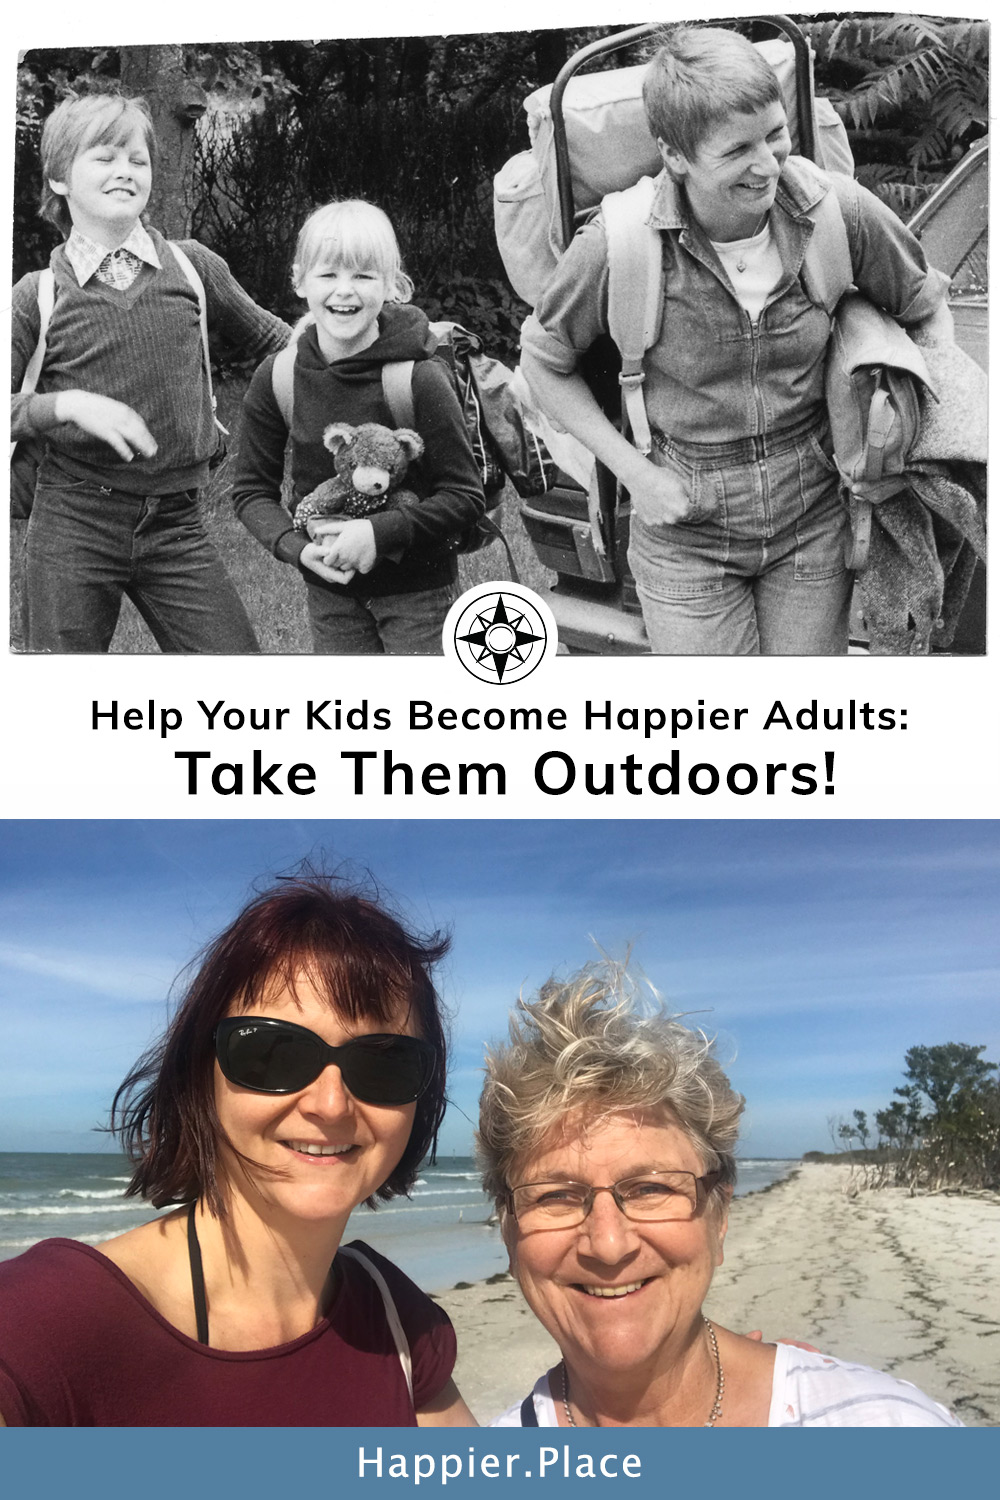 Help your kids become happier adults: take them outdoors! Outdoor fun makes families happier and healthier for generations.  #HappierPlace #nature #parenting #outdoors